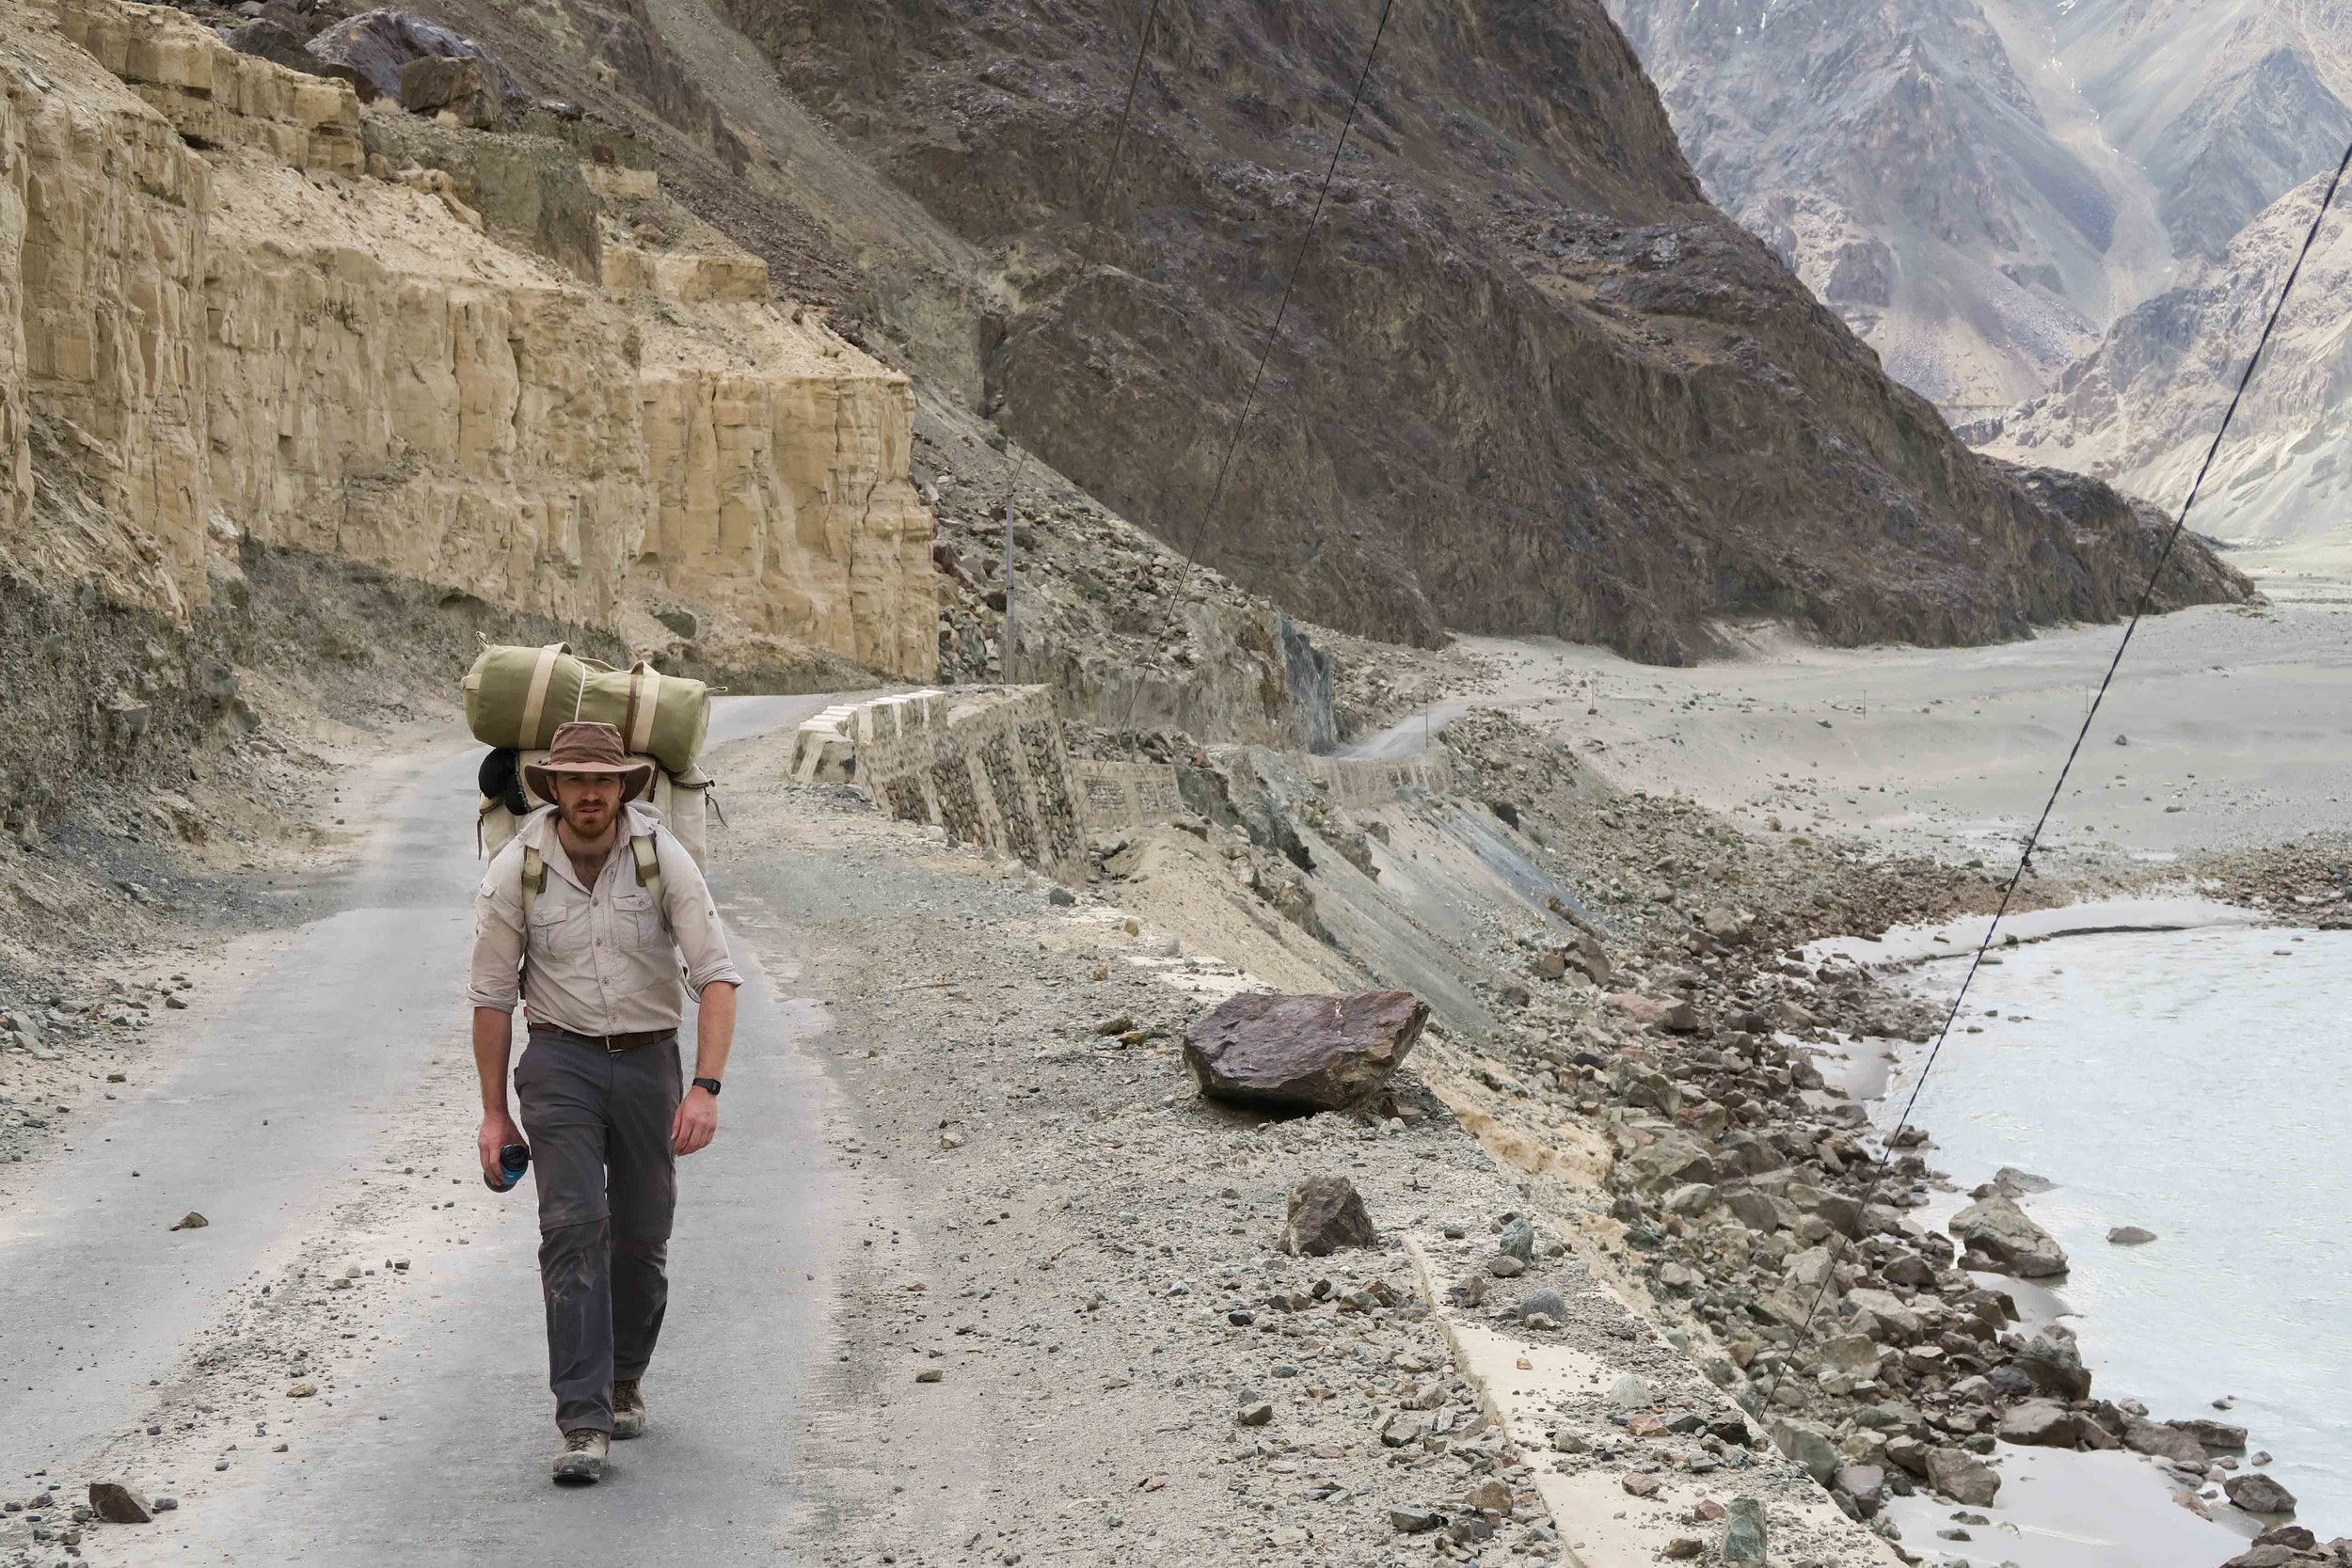 Along the Nubra valley we were able to follow the road most of the way